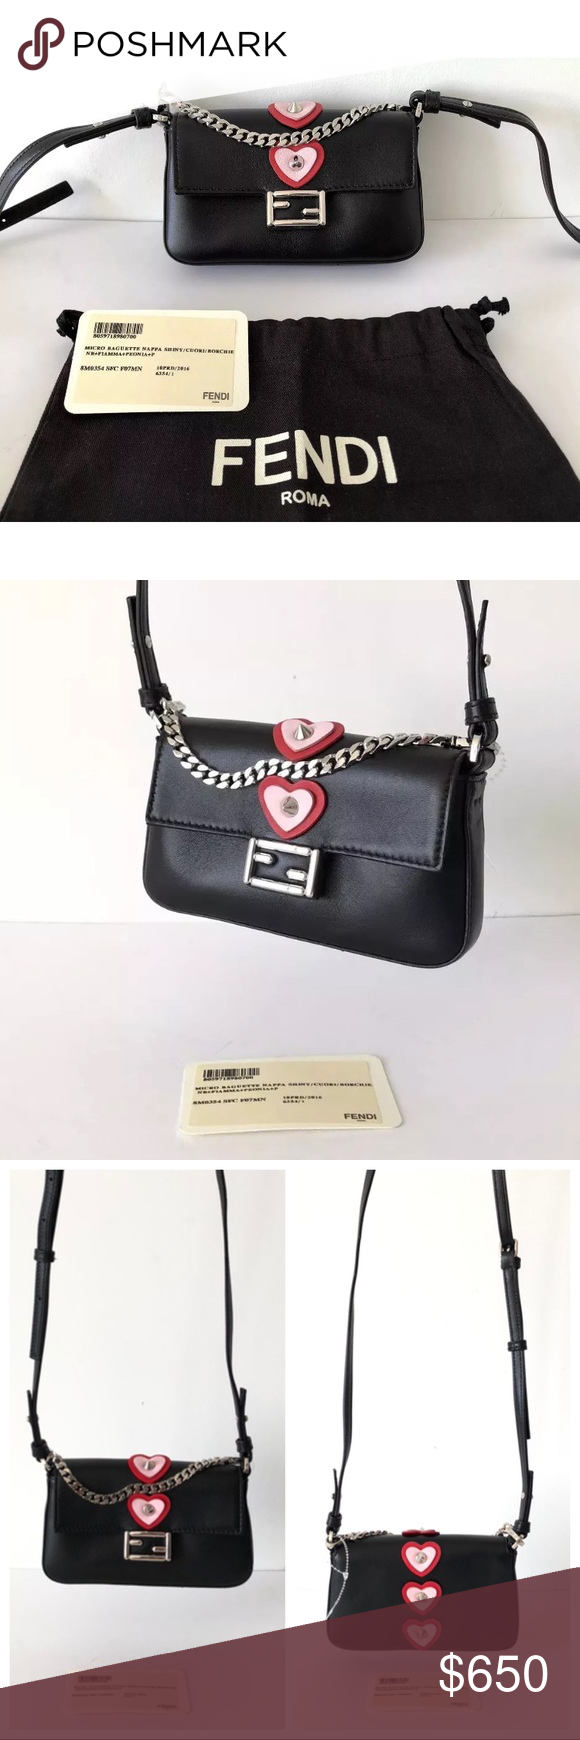 a5222f7db078 FENDI MICRO BAGUETTE HEART CROSS BODY NAPPA BAG Condition  Brand New Item  With Dust Bag